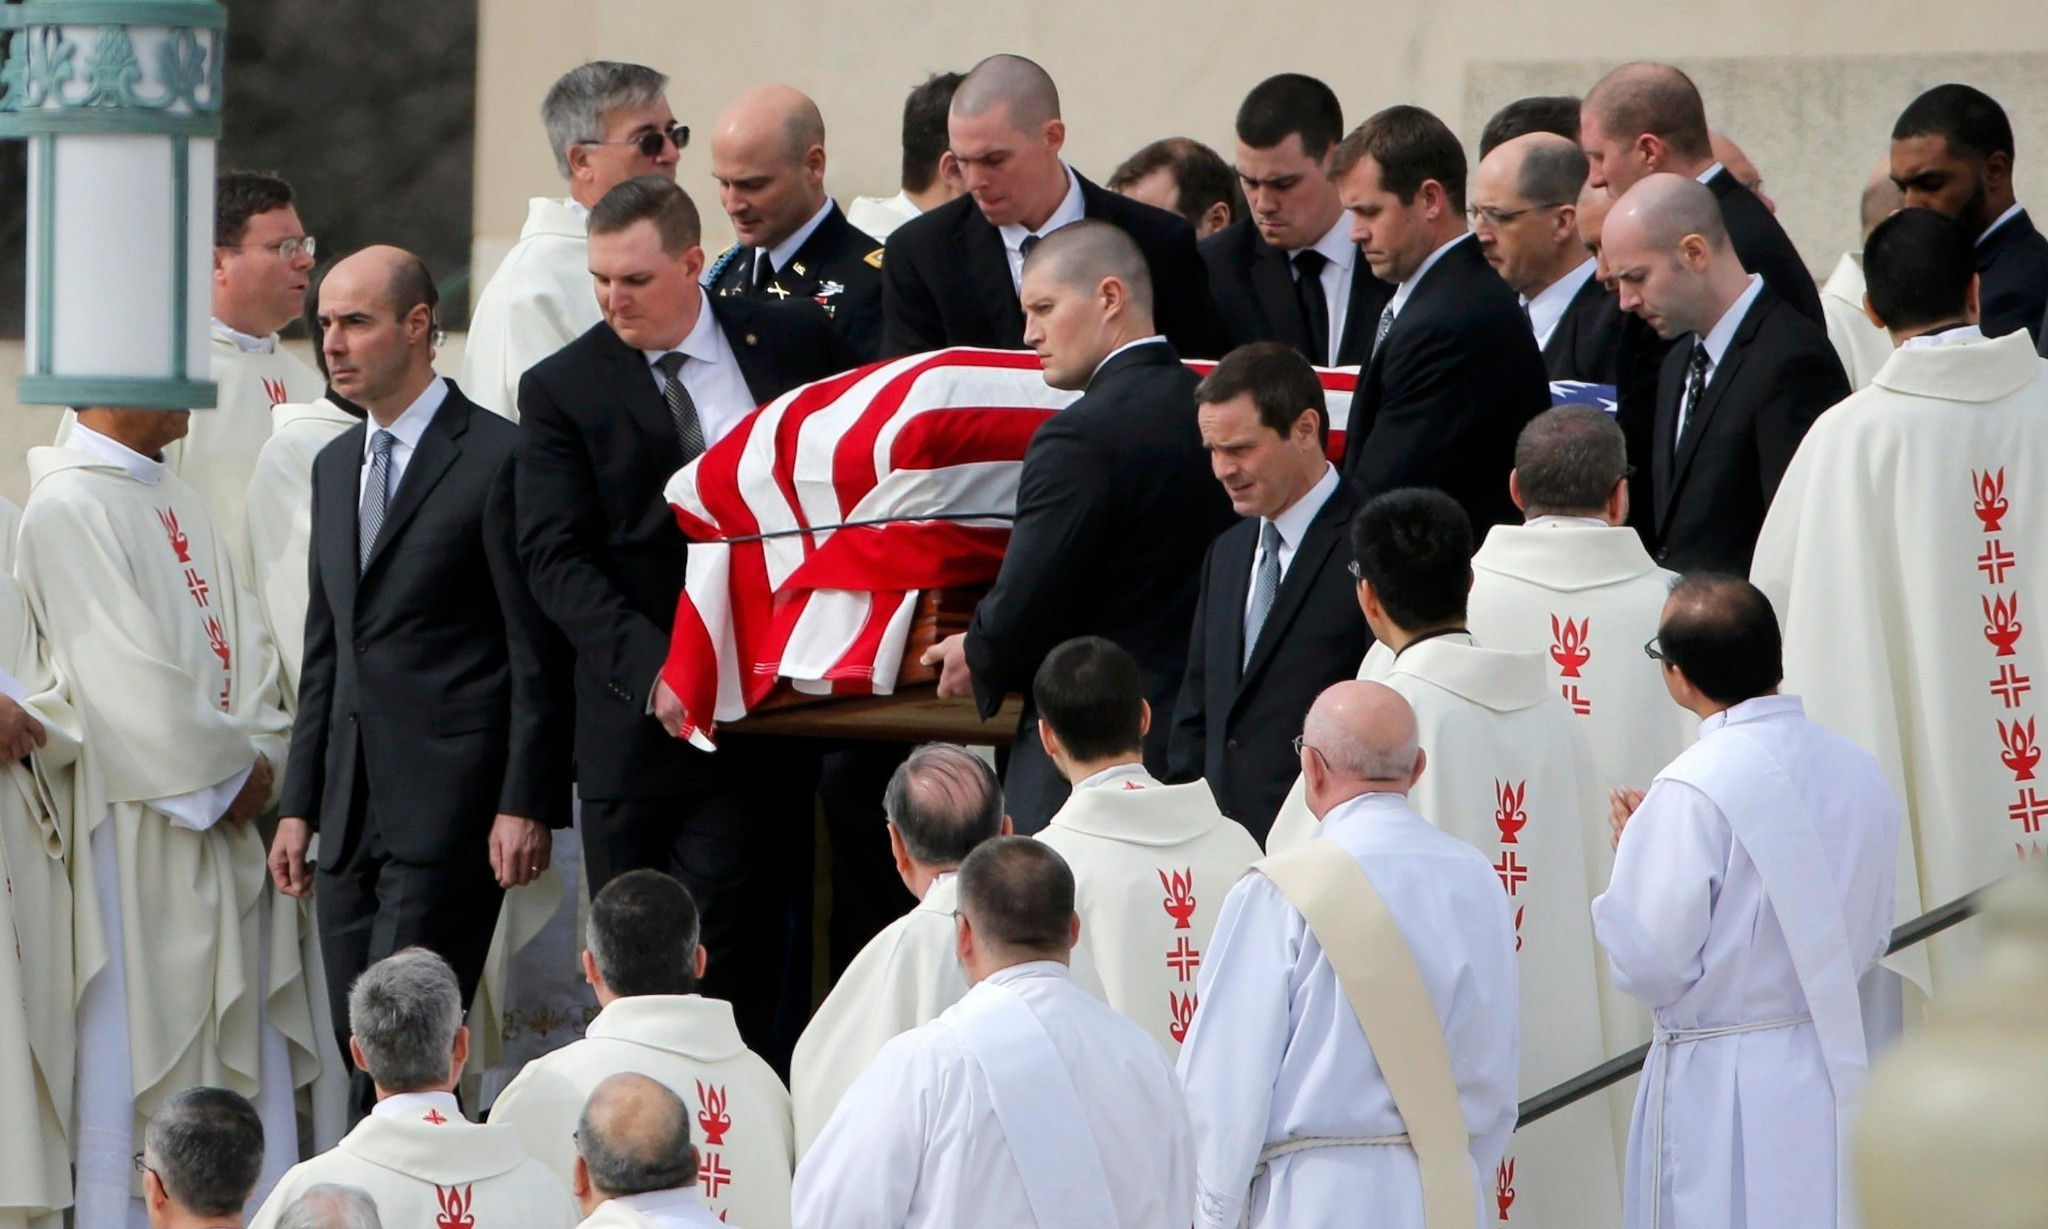 Antonin Scalia's son delivers homily in funeral mass for supreme court justice